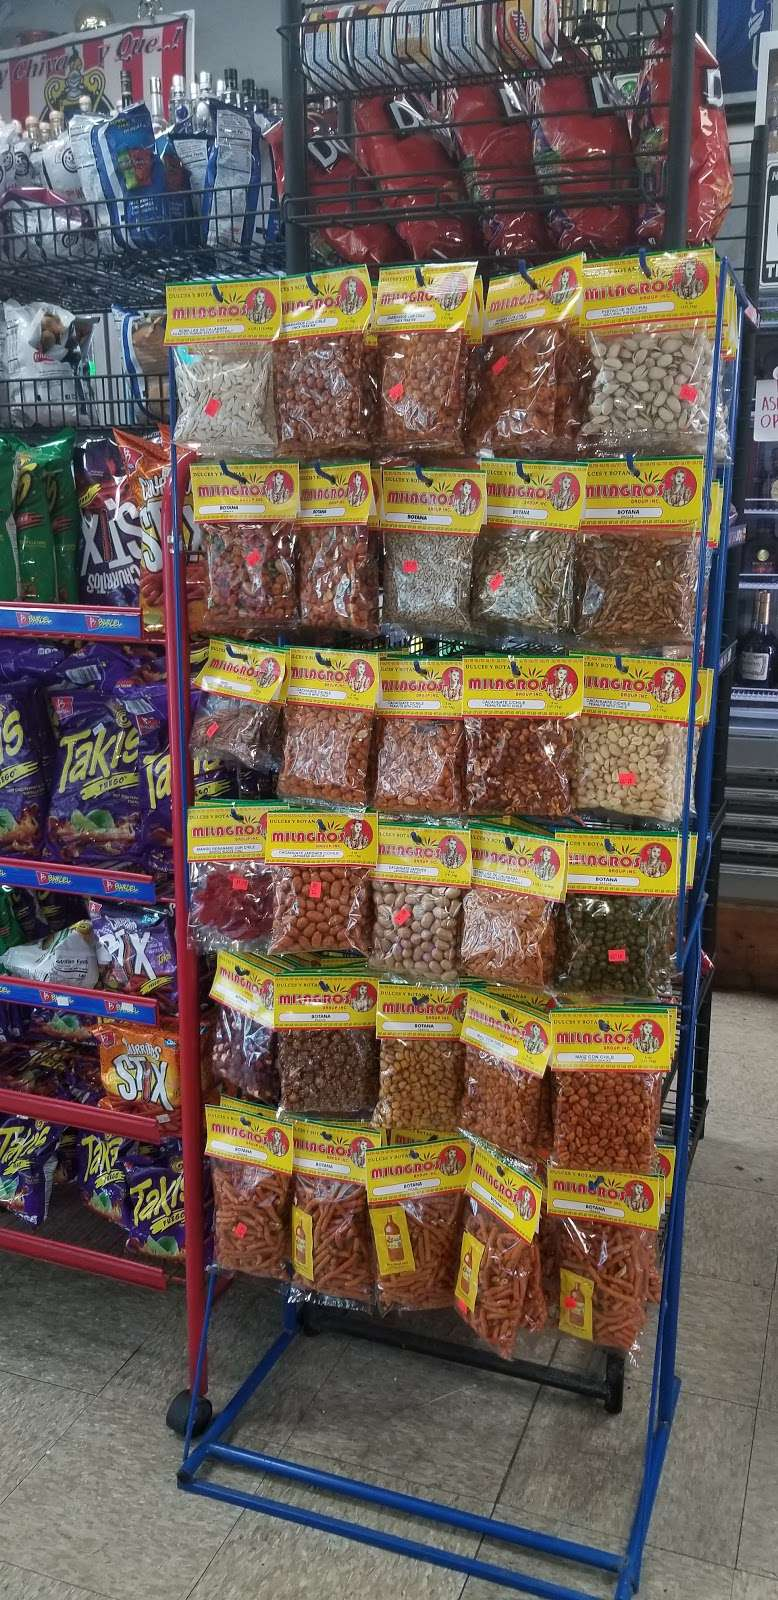 Lopez Liquors - store    Photo 3 of 5   Address: 9700 S Commercial Ave # 1, Chicago, IL 60617, USA   Phone: (773) 221-3224